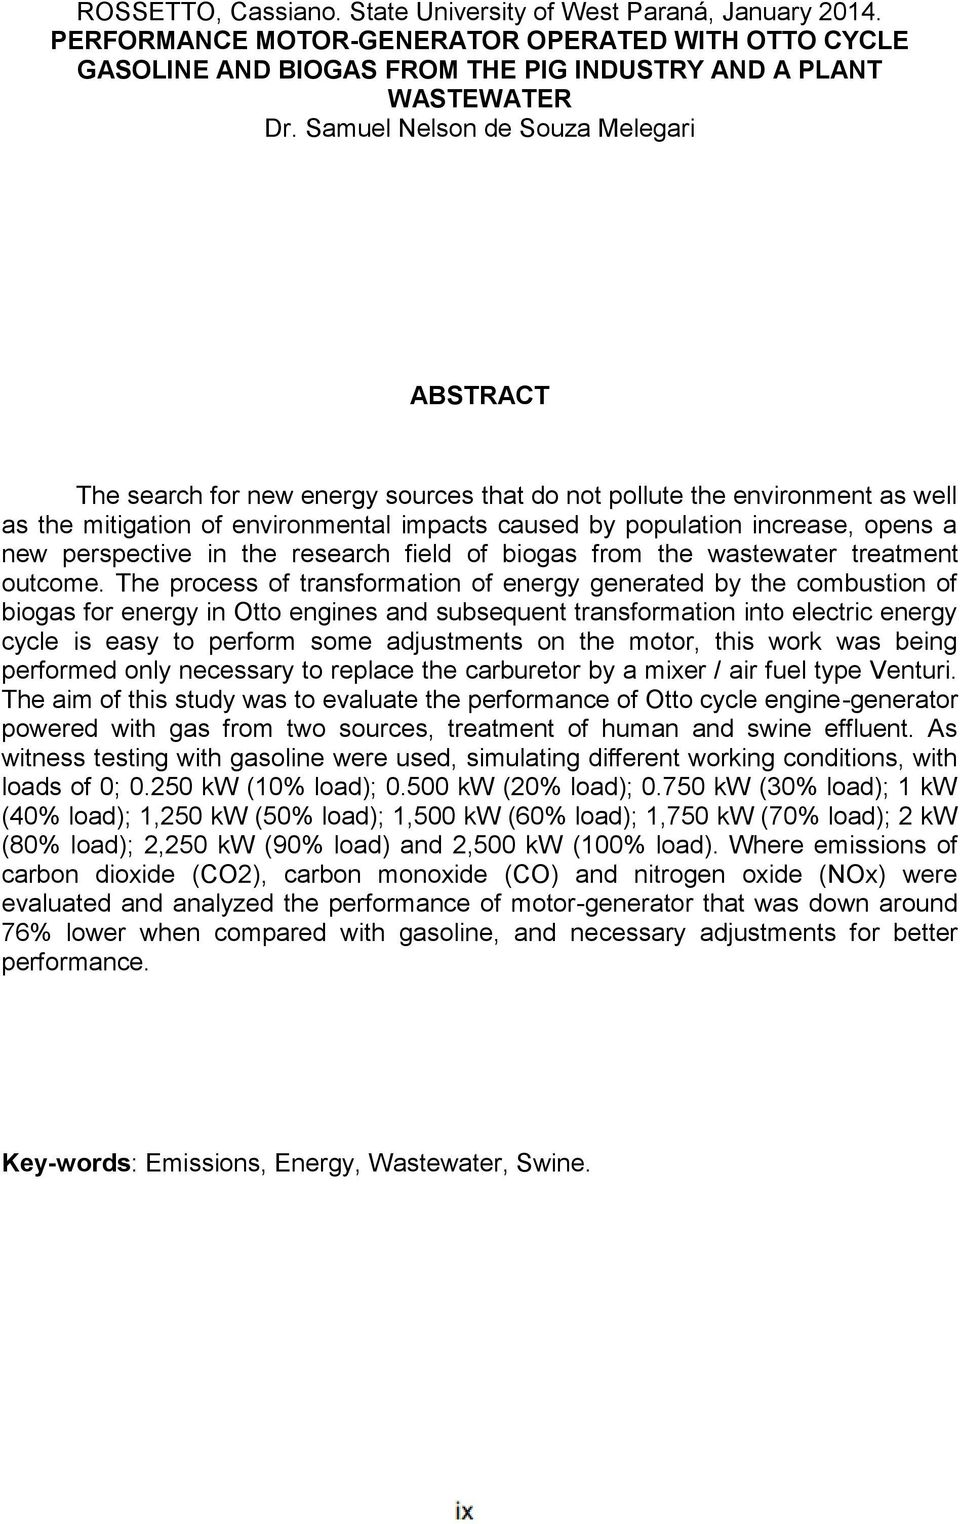 a new perspective in the research field of biogas from the wastewater treatment outcome.